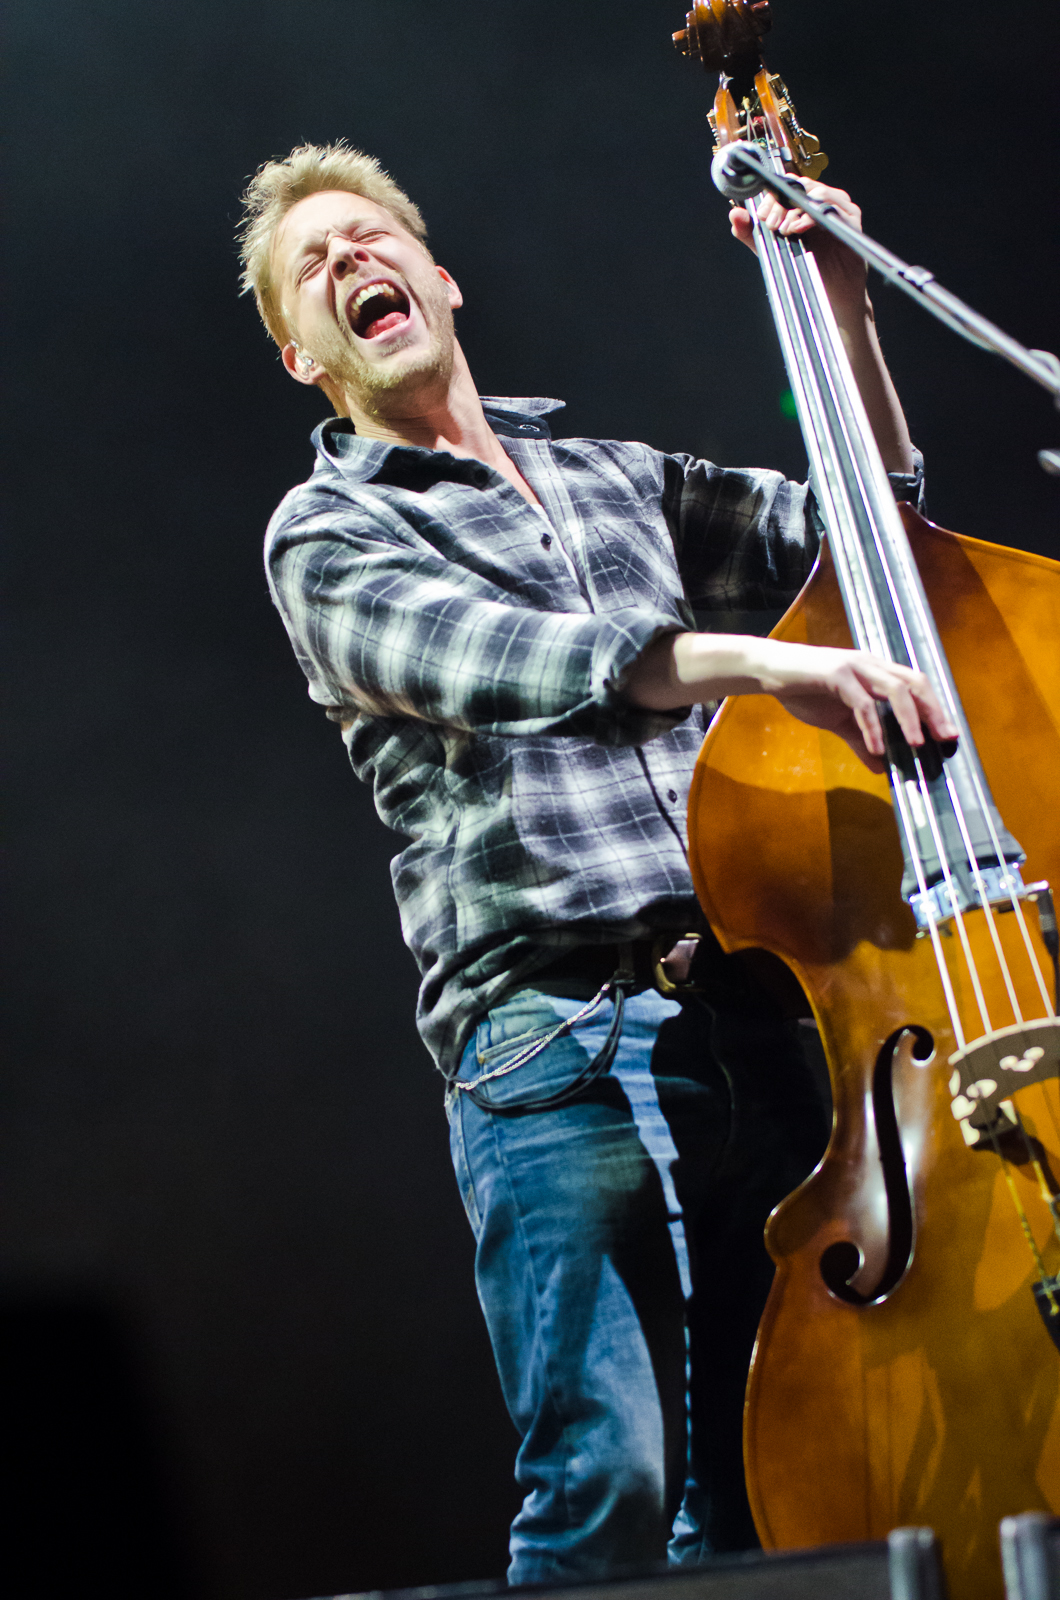 mumford_and_sons_oracle_arena_live105_nssn1